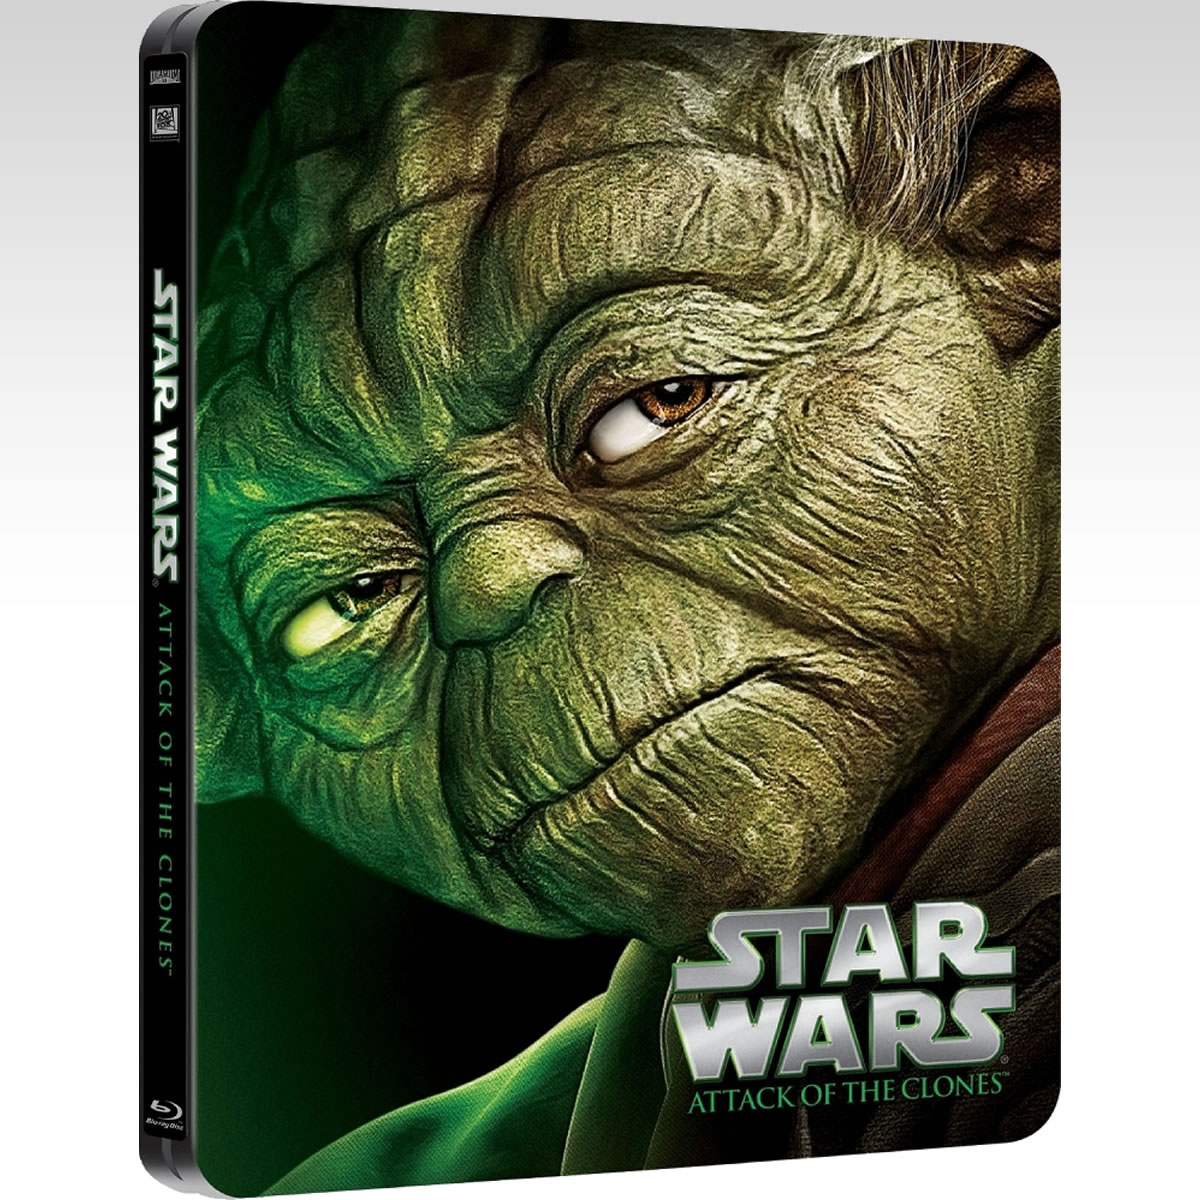 STAR WARS EPISODE II: ATTACK OF THE CLONES Limited Edition Steelbook [Imported] (BLU-RAY)